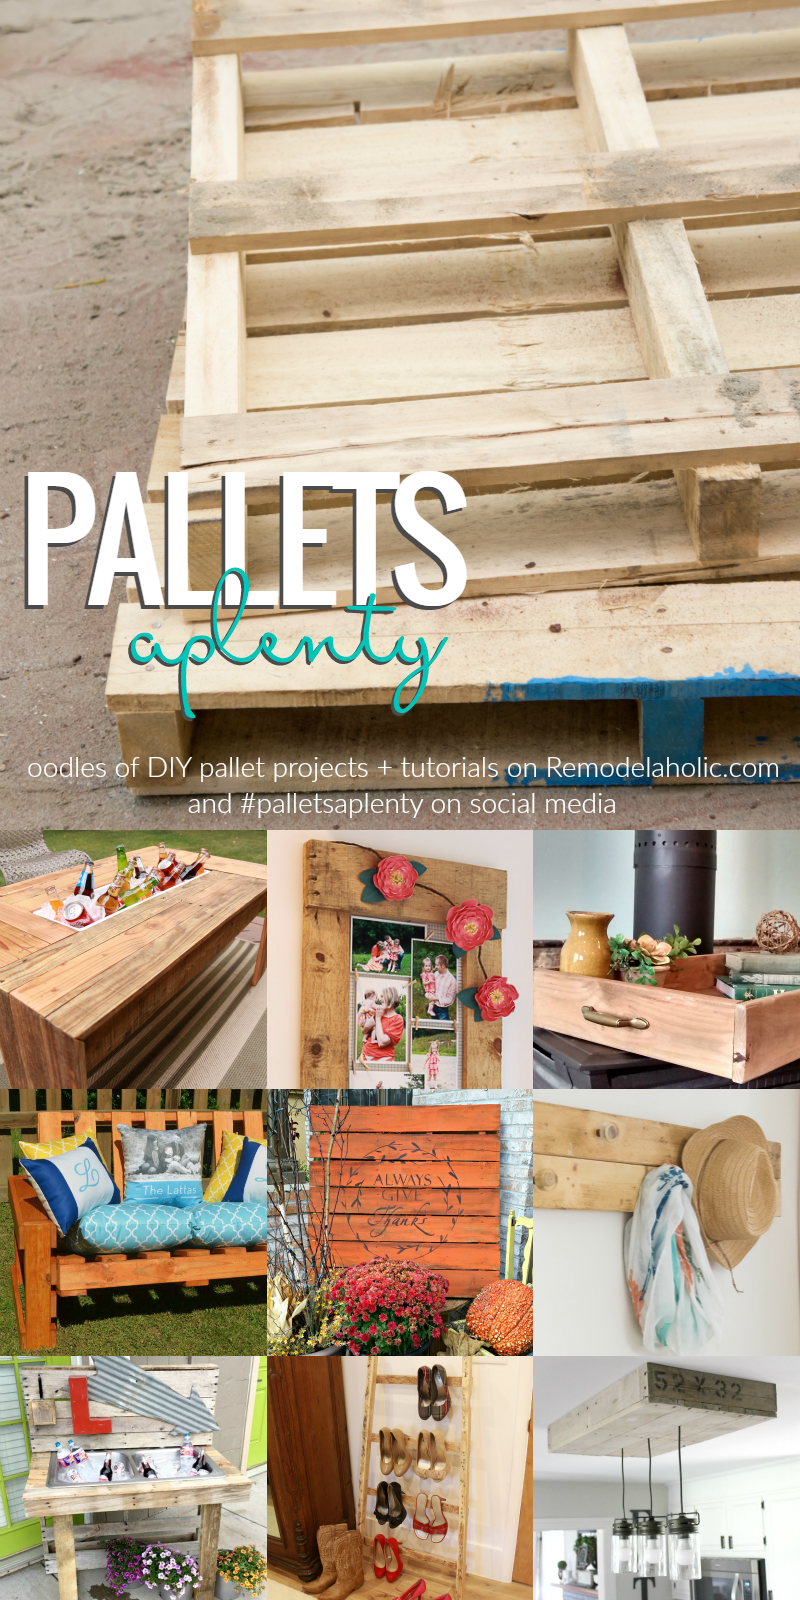 Wooden transport pallets have become increasingly popular for diy - Wooden Transport Pallets Have Become Increasingly Popular For Diy 0